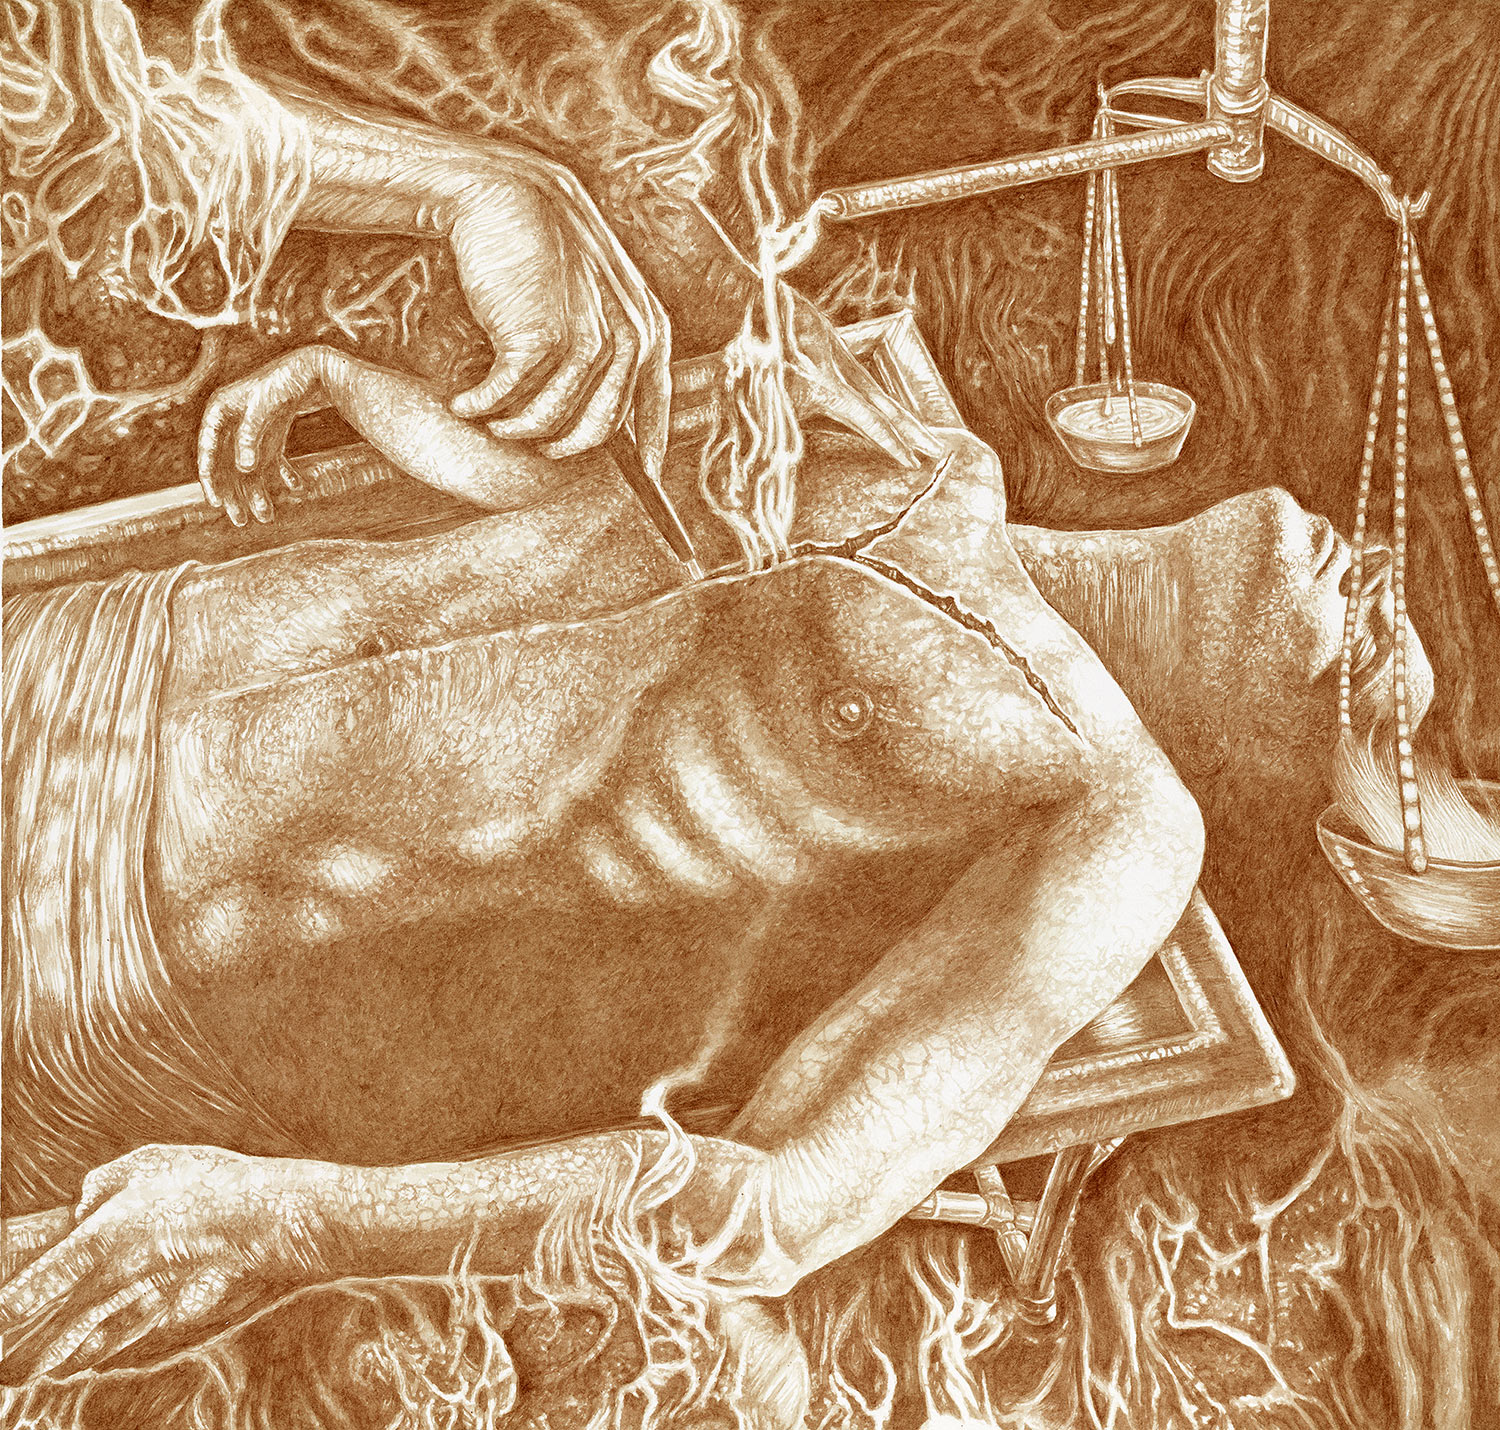 Vincent Castiglia - Autopsy of the Soul, blood painting